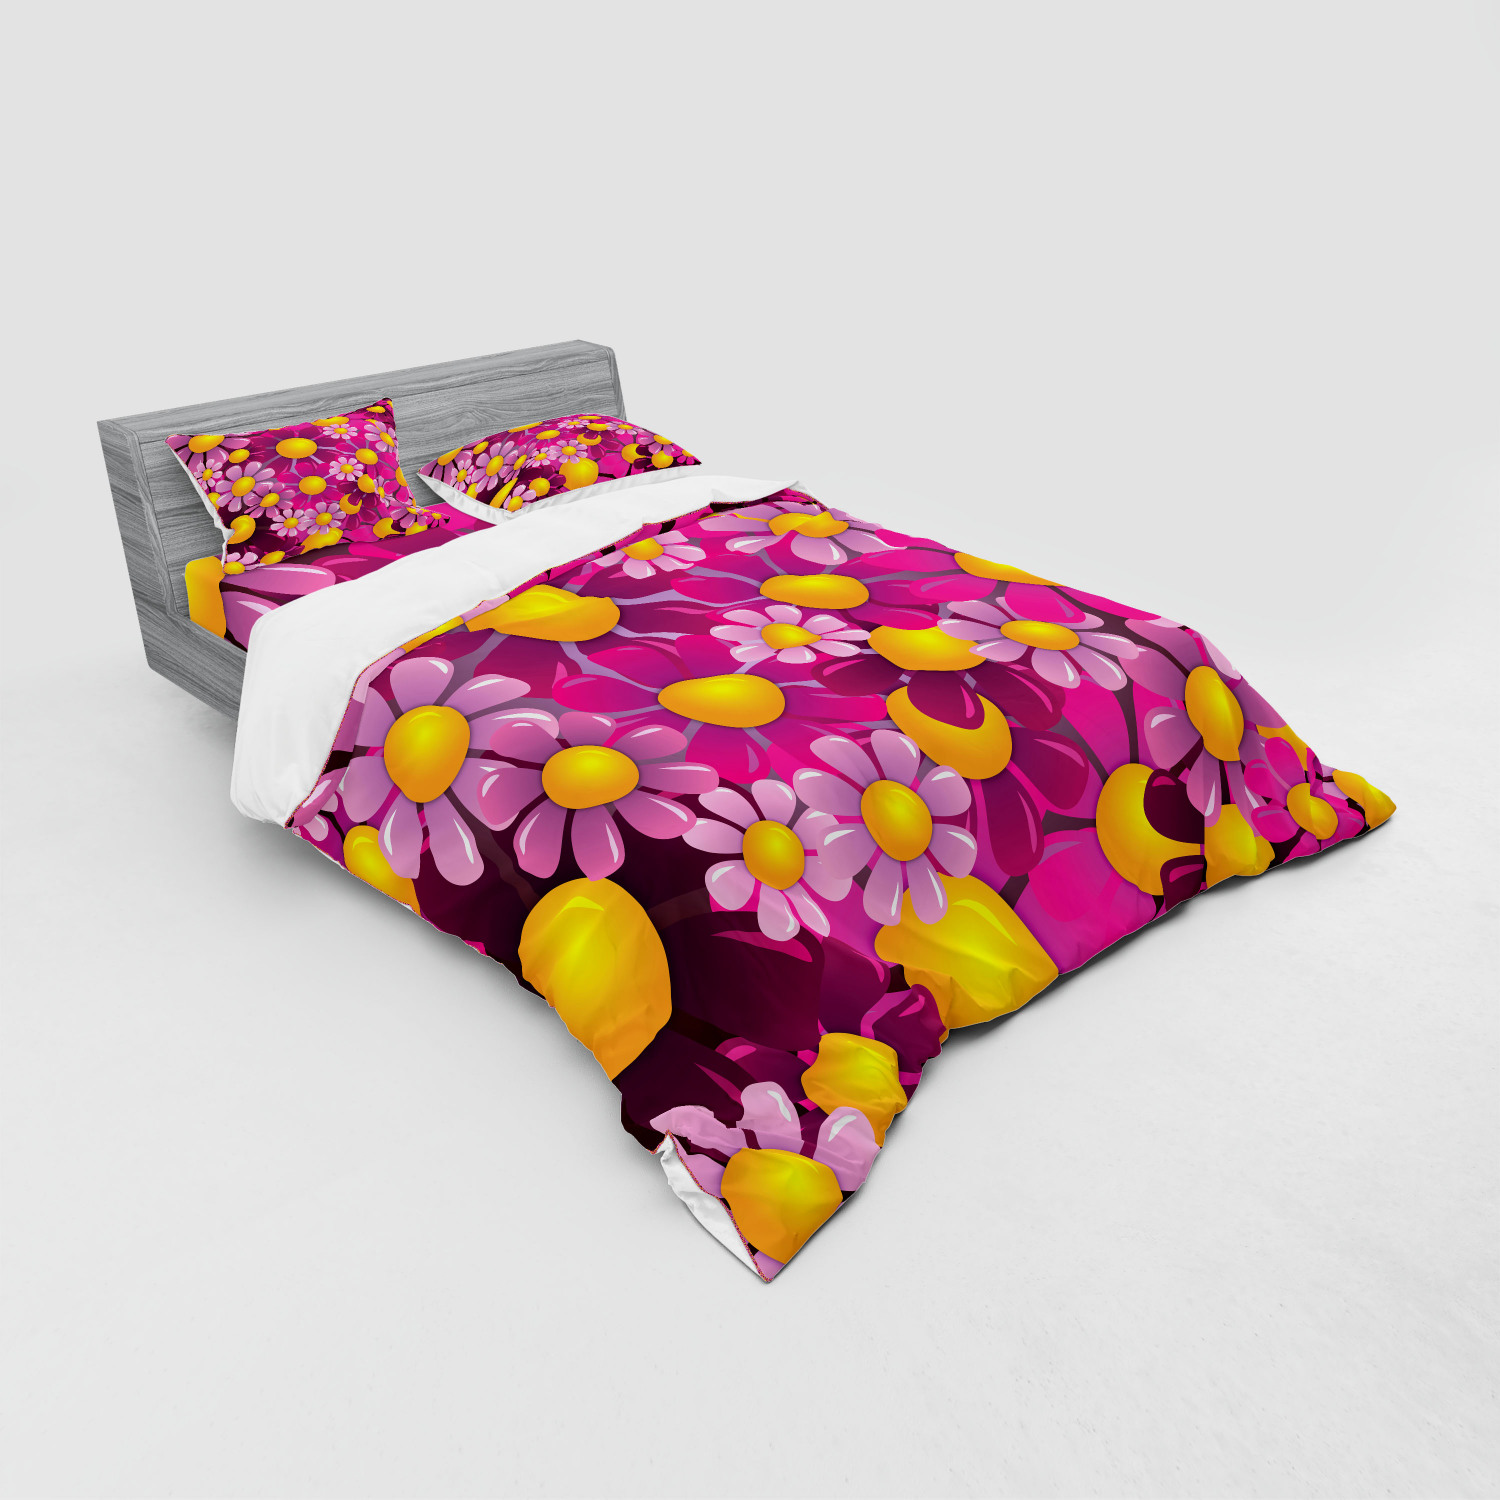 thumbnail 79 - Ambesonne Summer Bedding Set Duvet Cover Sham Fitted Sheet in 3 Sizes